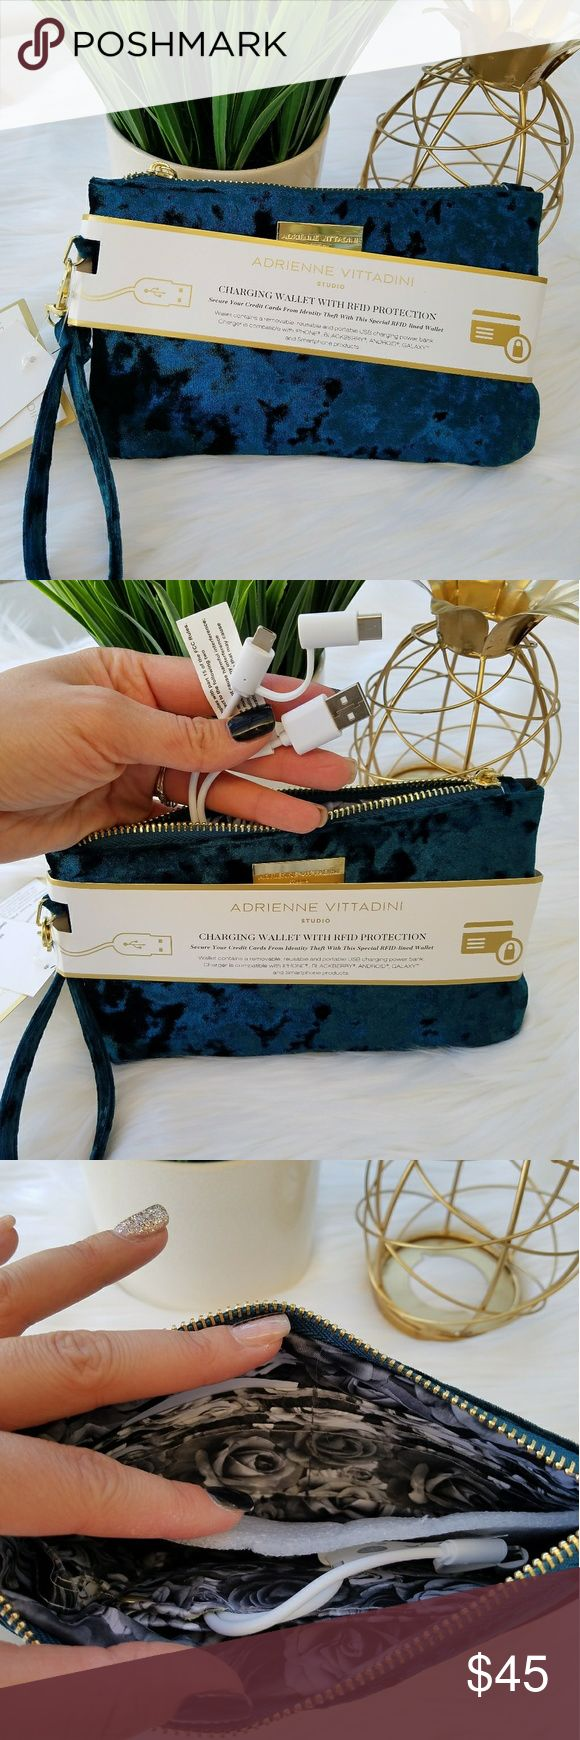 New!! Adrienne Vittadini Charging Wristlet Hot item! Adrienne Vittadini, Teal-Velvet charging wallet, charges your phone while keeping your credit cards safe/secure from identity theft. RFID-lined protection inside the bag. Removable chargers that are compatible w/Iphone, Blackberry, Android & Galaxy smartphone devices!  Convenient size wristlet for a minimalist who doesnt want to carry a purse to the beach, vacation, evening out. Or carry in your purse & never worry about a charge!  Great…